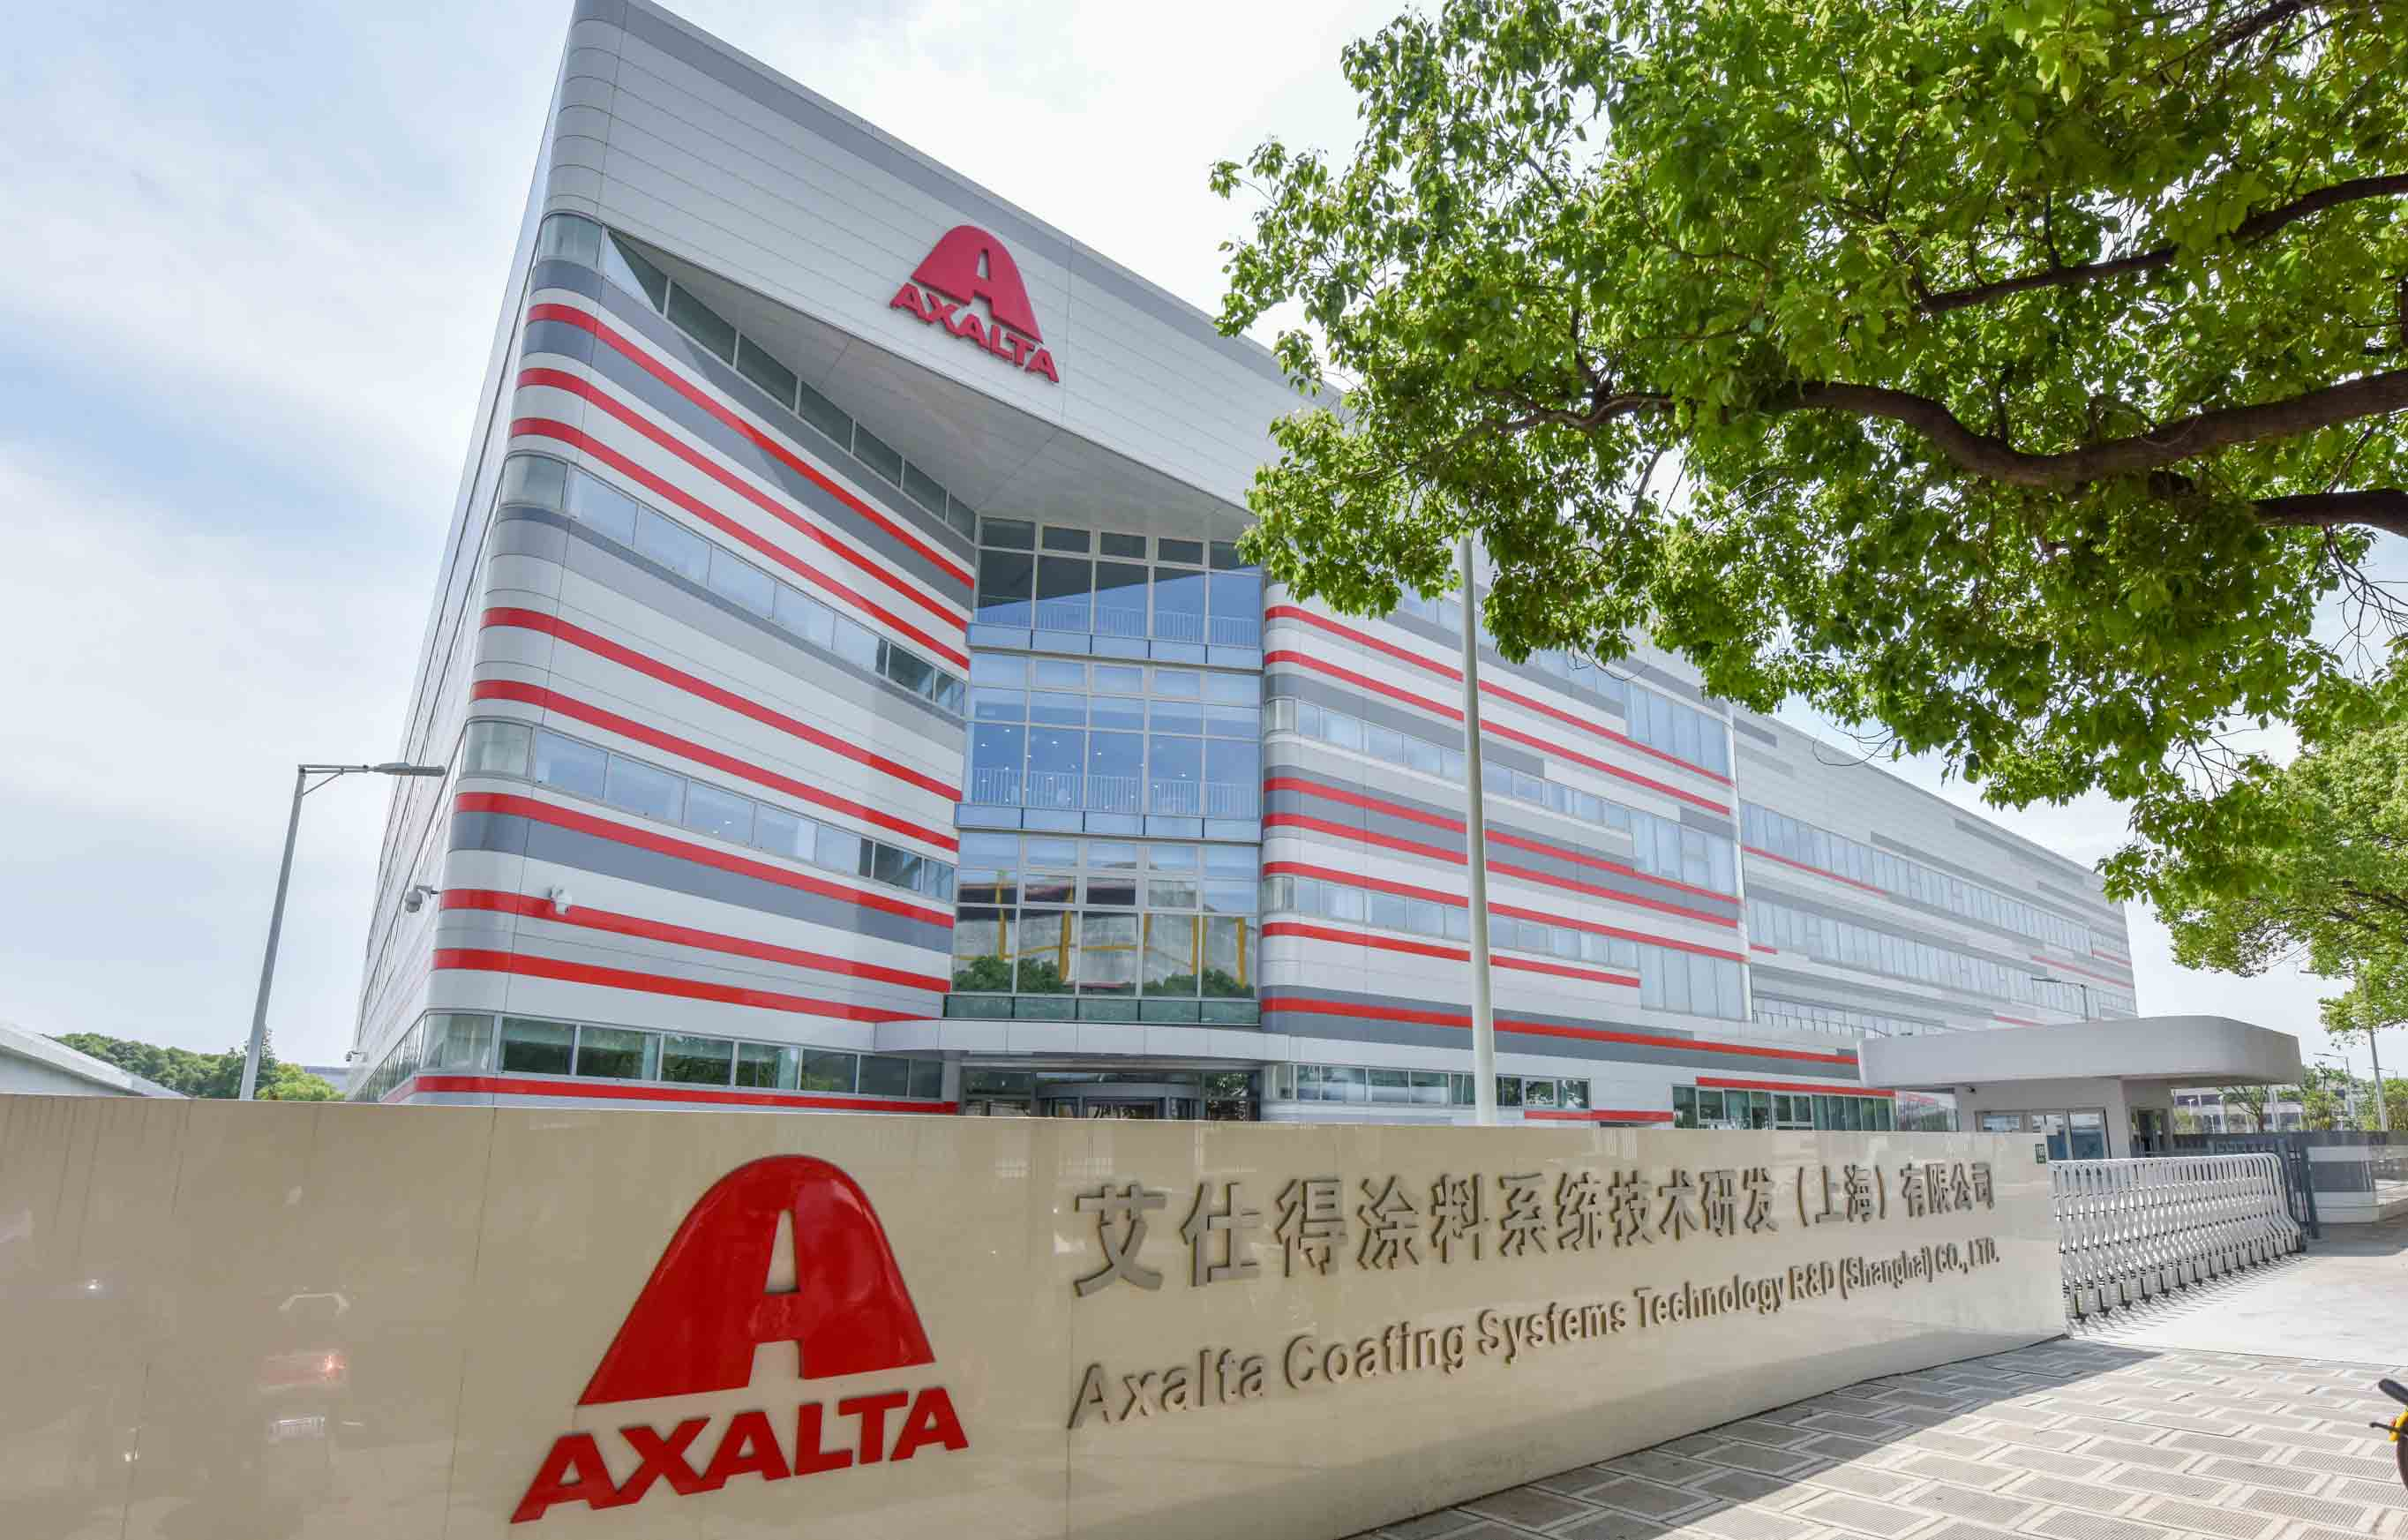 Axalta Coating Systems' Asia-Pacific Technology Center